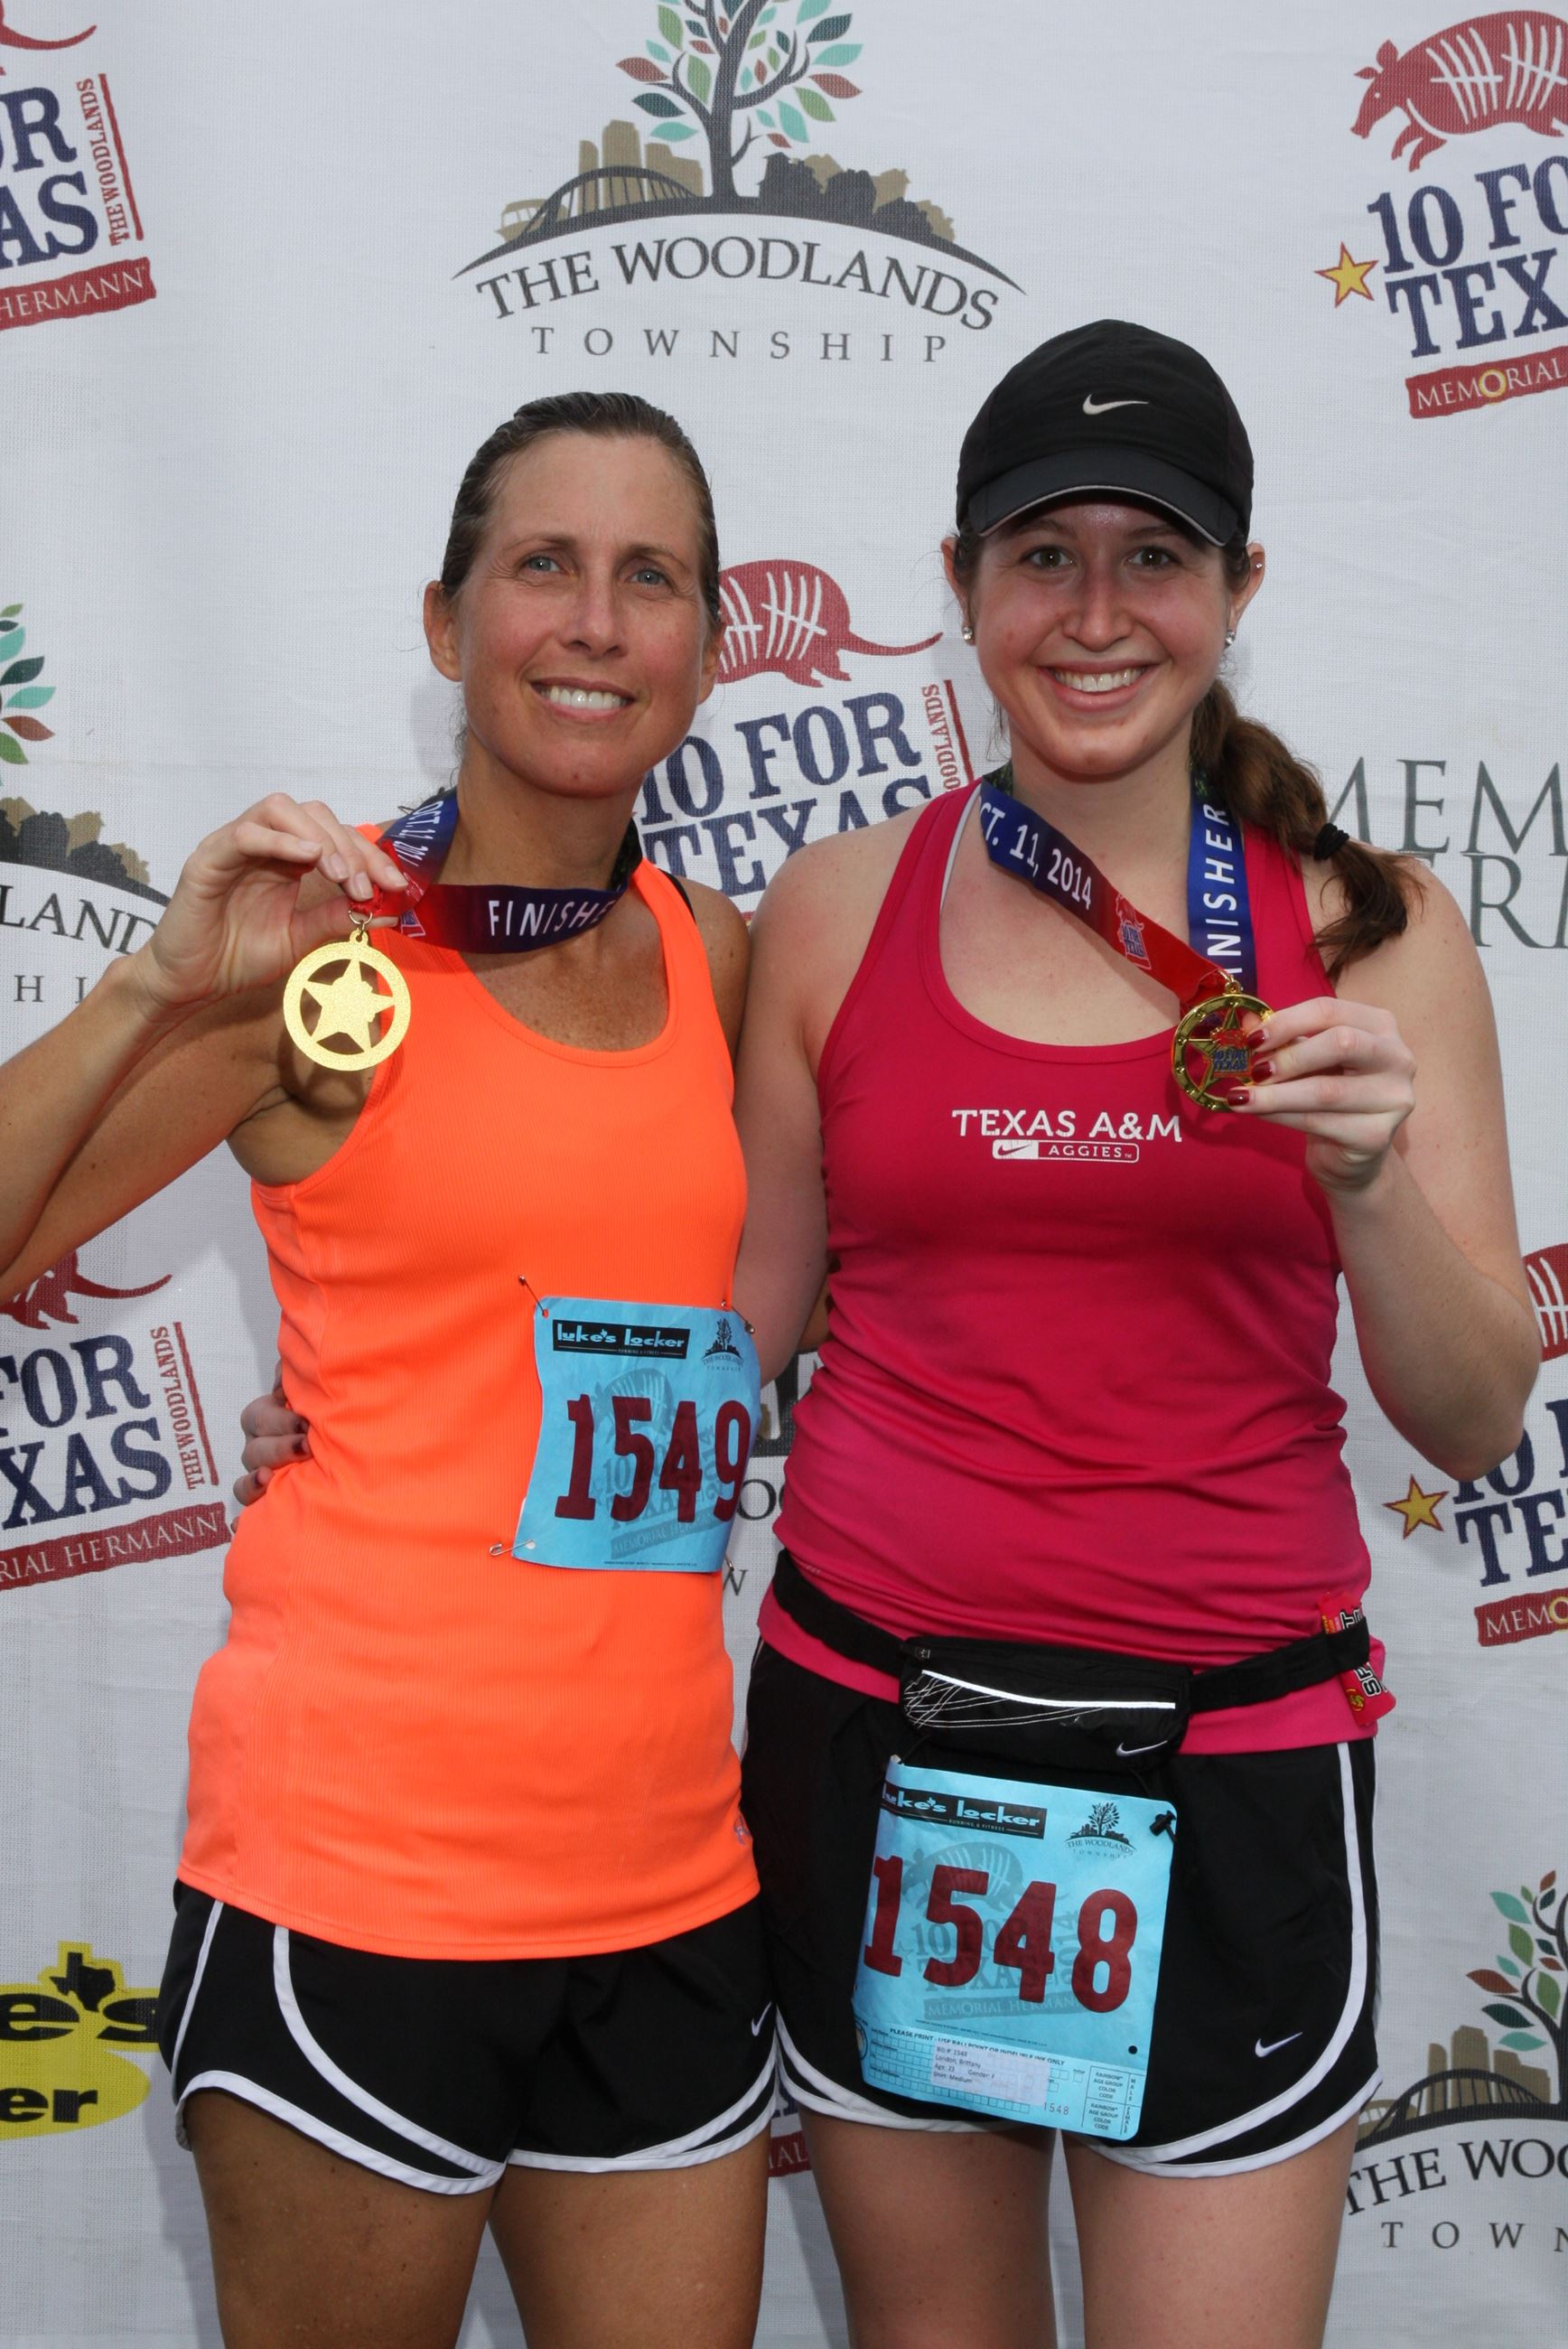 104TX _ Females with Medals